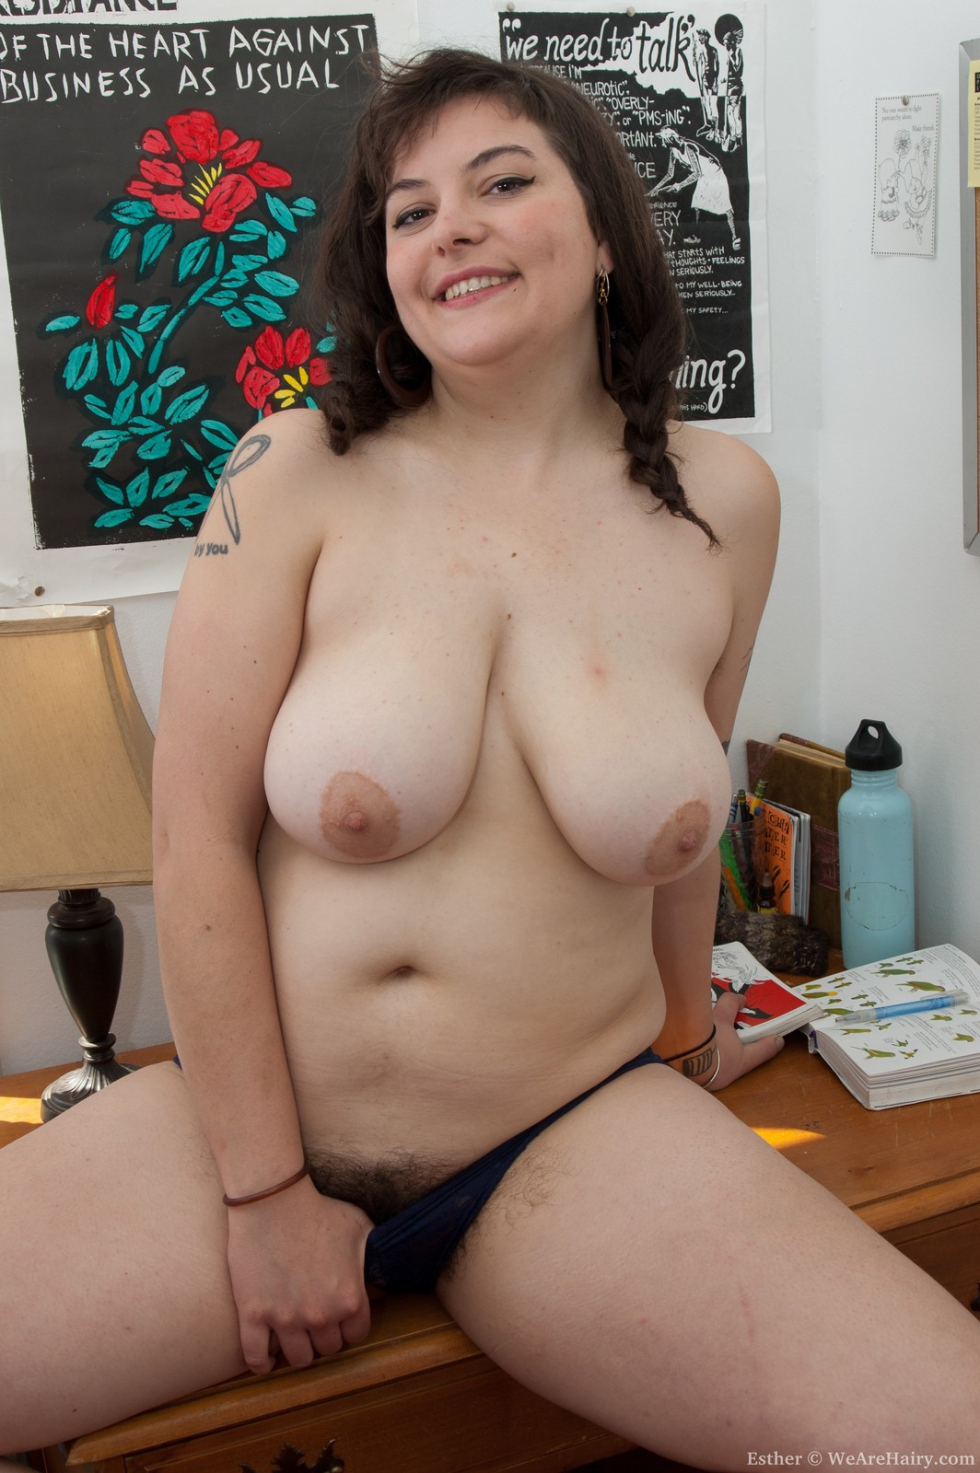 HAIRY BUSH VIDEOS, FREE HAIRY BUSH PORN MOVIES, HAIRY BUSH